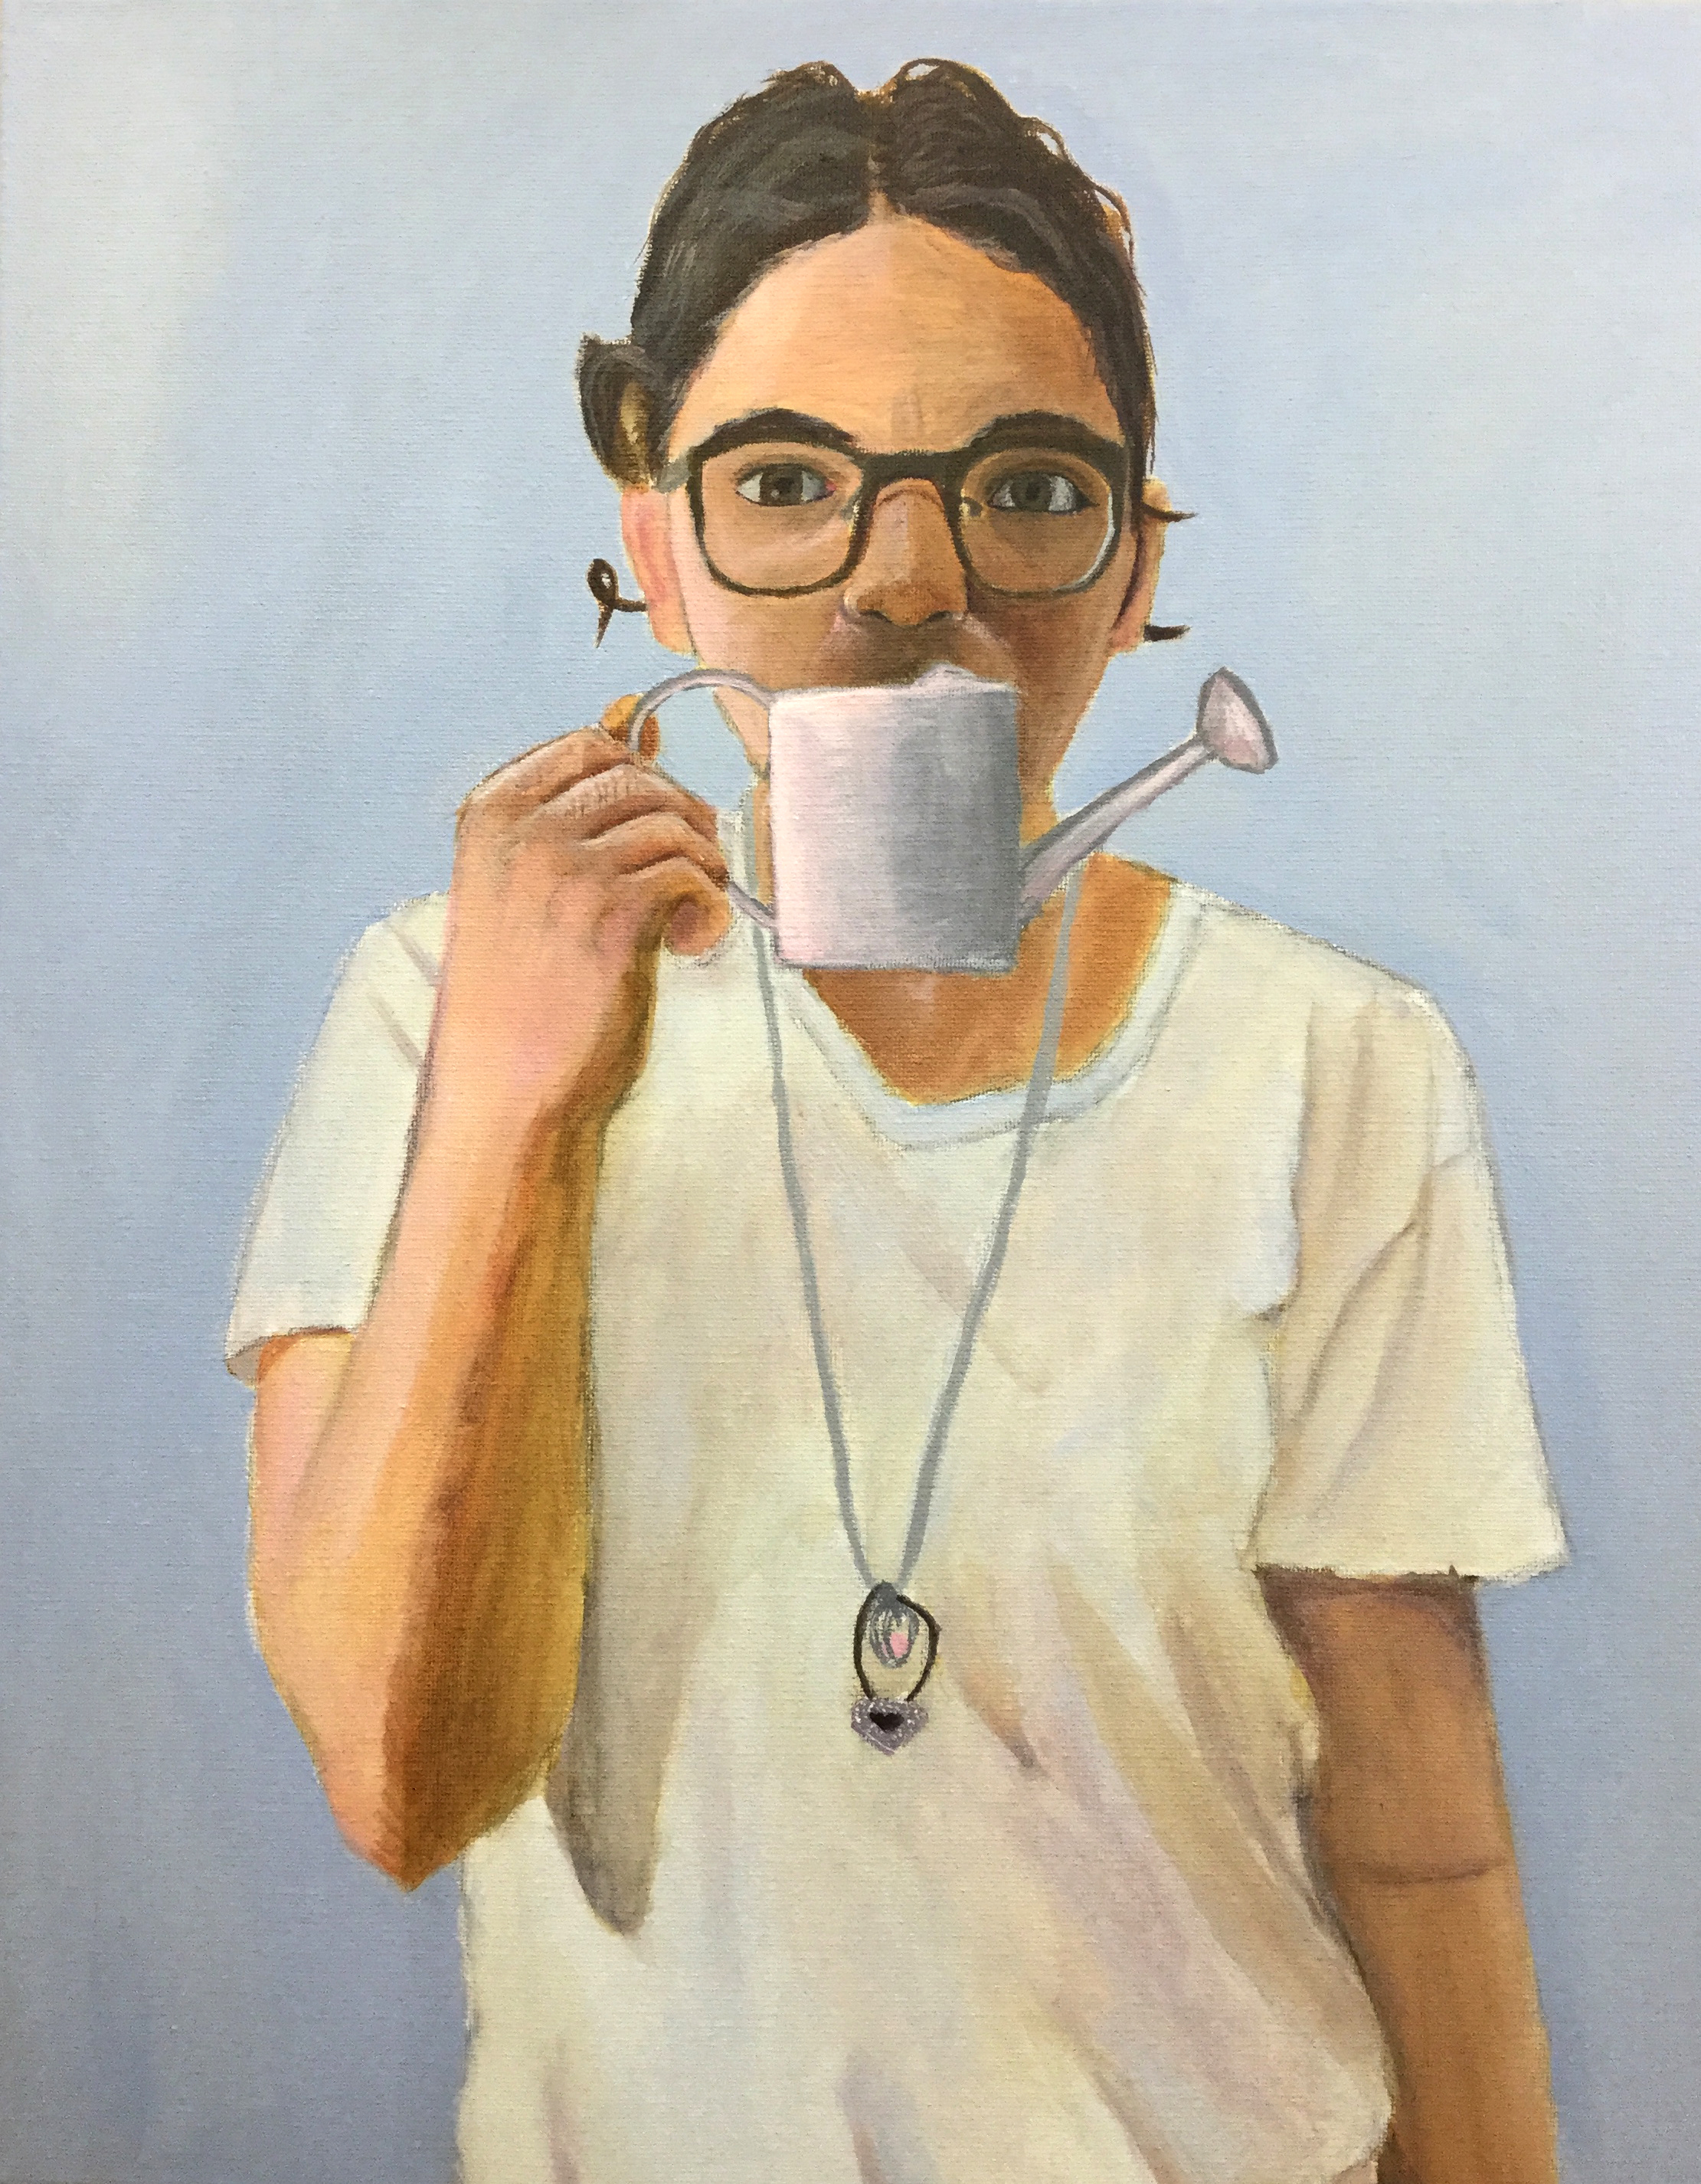 PAINTING SUMMER INTENSIVE -Pratt Munson Williams and Proctor Art Institute    Project 2   Students are asked to paint a self portrait holding an object. Students can use object to compare size and proportions to facial structures and/or anatomy.  Acrylic on Canvas